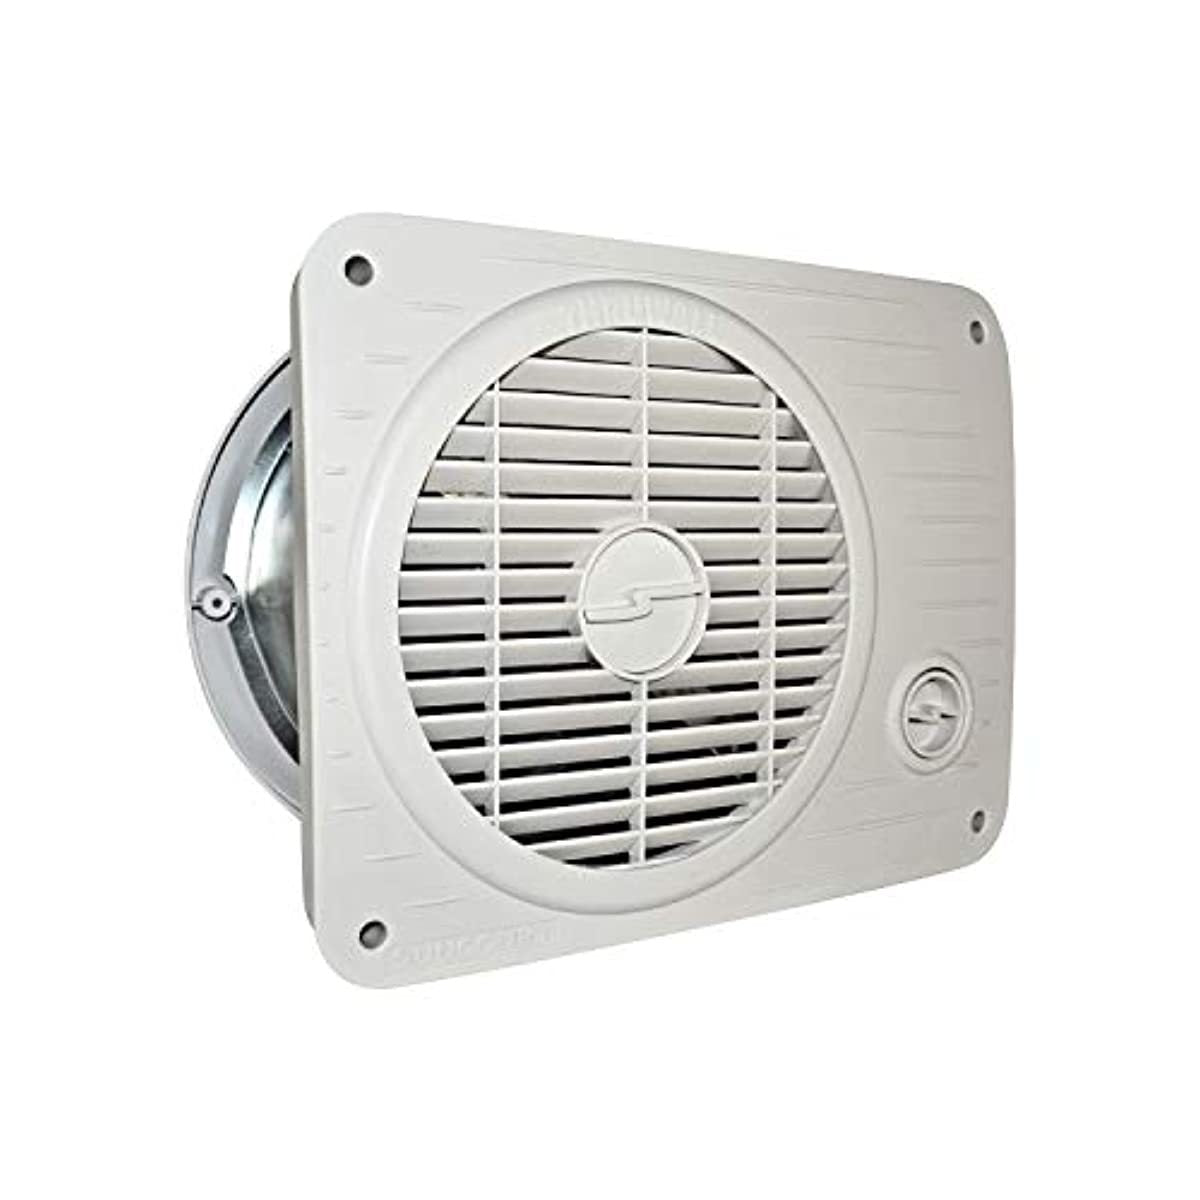 Suncourt TW208P ThruWall Hard Wired Variable Speed Room to Room Wall Mounted Air Flow Transfer Fan with Rotating Grille and Quiet Operation, White